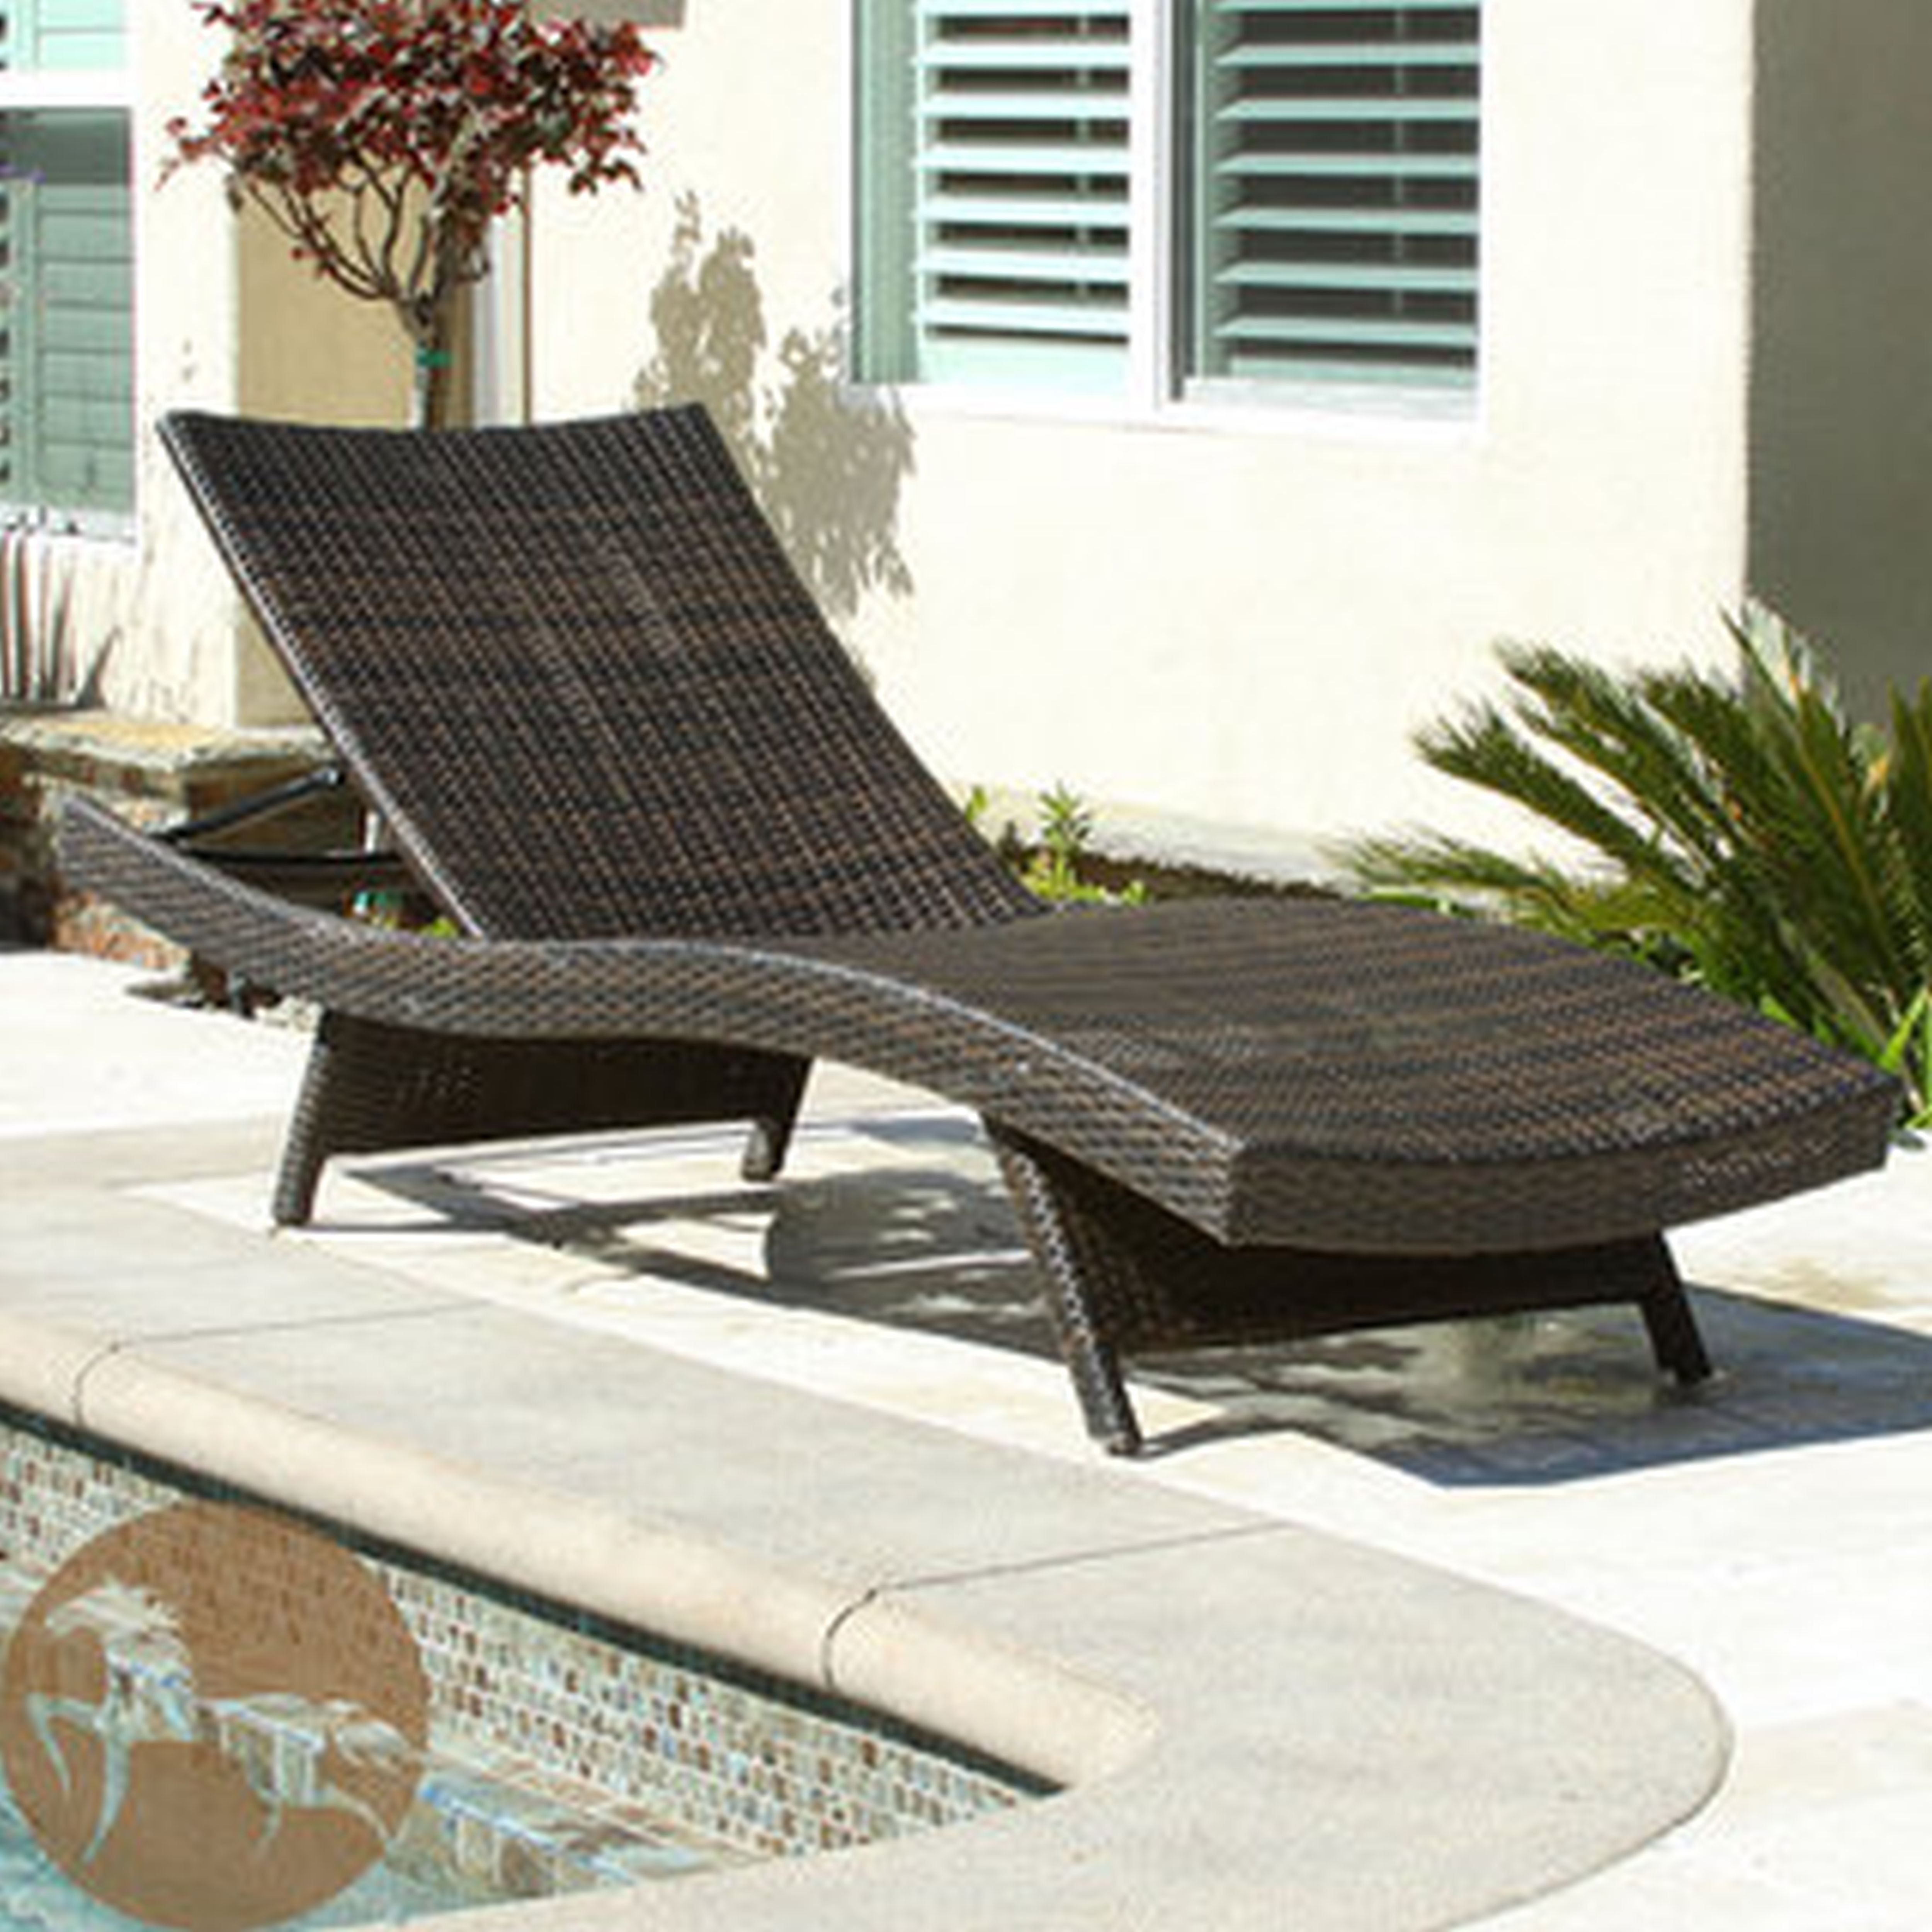 Outdoor : Patio Chaise Lounge Chairs Pool Lounge Chairs Chaise Intended For Well Known Wicker Chaise Lounge Chairs For Outdoor (View 4 of 15)